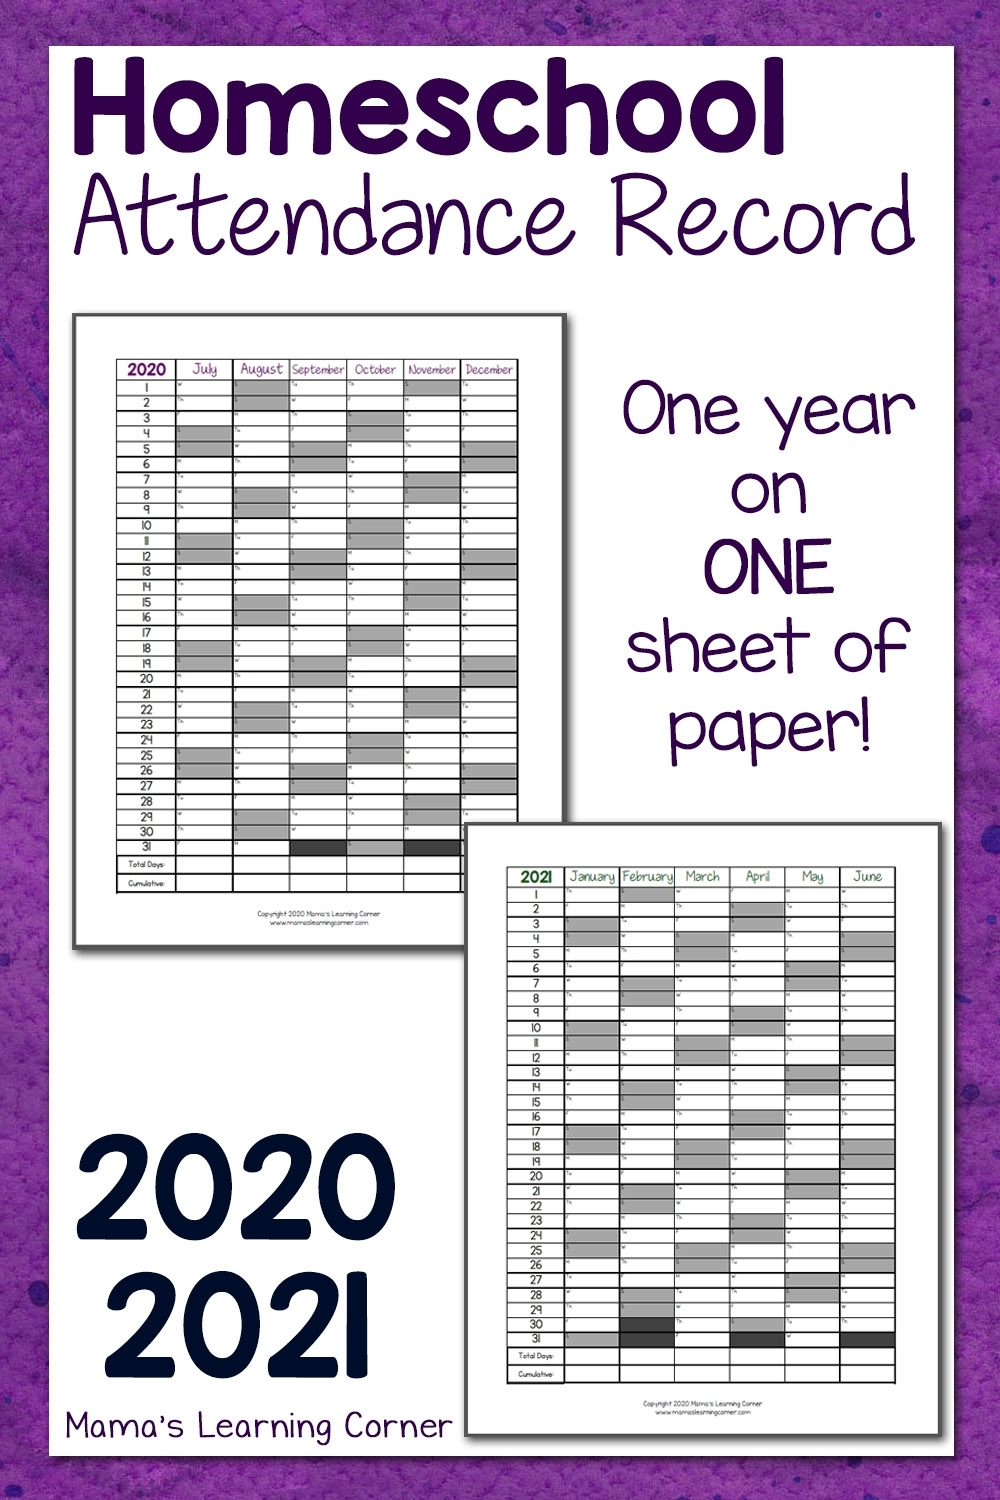 Homeschool Attendance Record 2020-2021 - Mamas Learning Corner